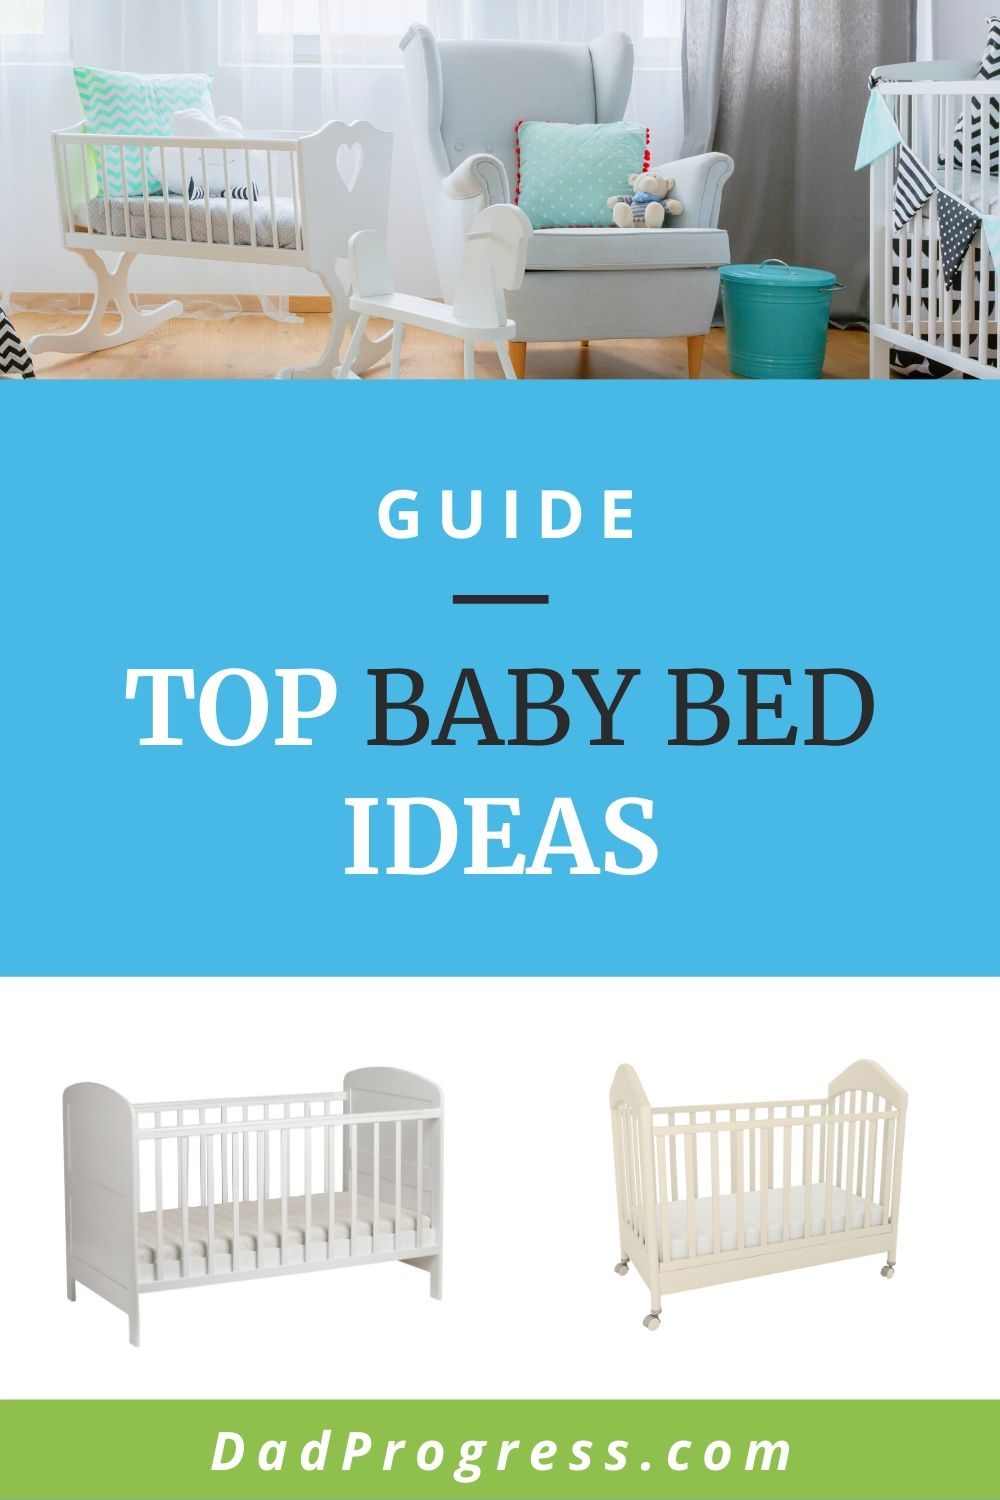 Crib Vs Mini Crib How Are They Different And Which Is The Best Choice For You In 2020 Mini Crib Cribs Cribs For Small Spaces